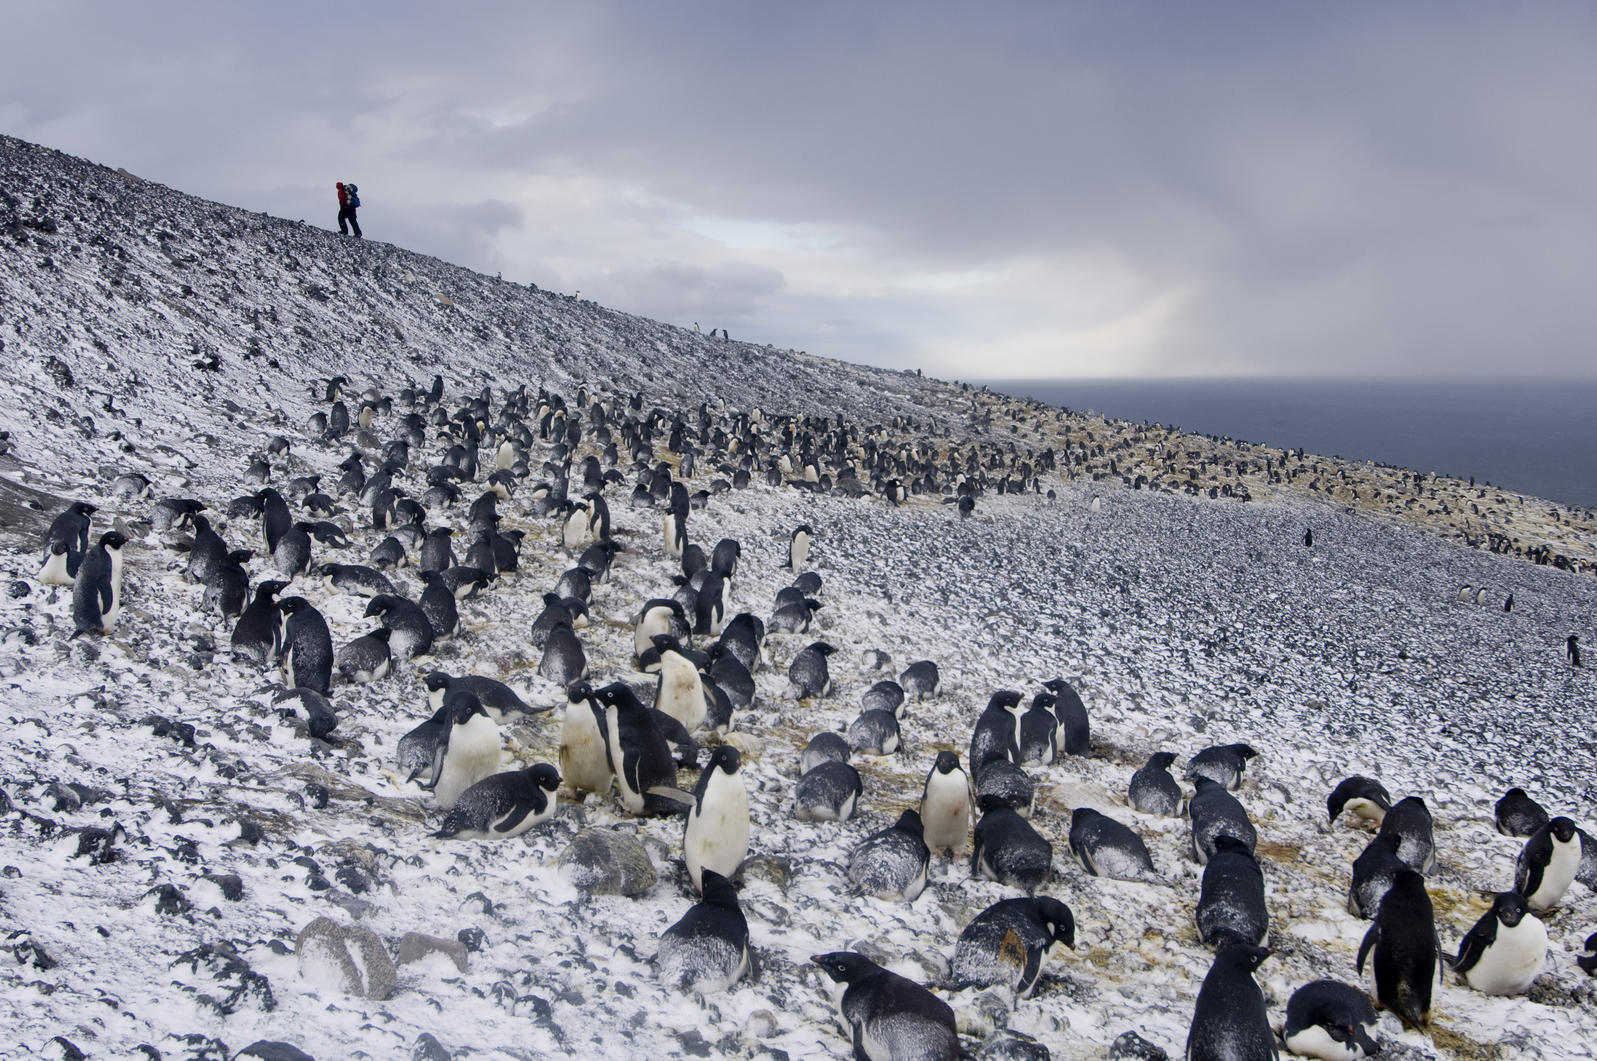 A subcolony of Adélies in fresh snow at Cape Crozier. Chris Linder